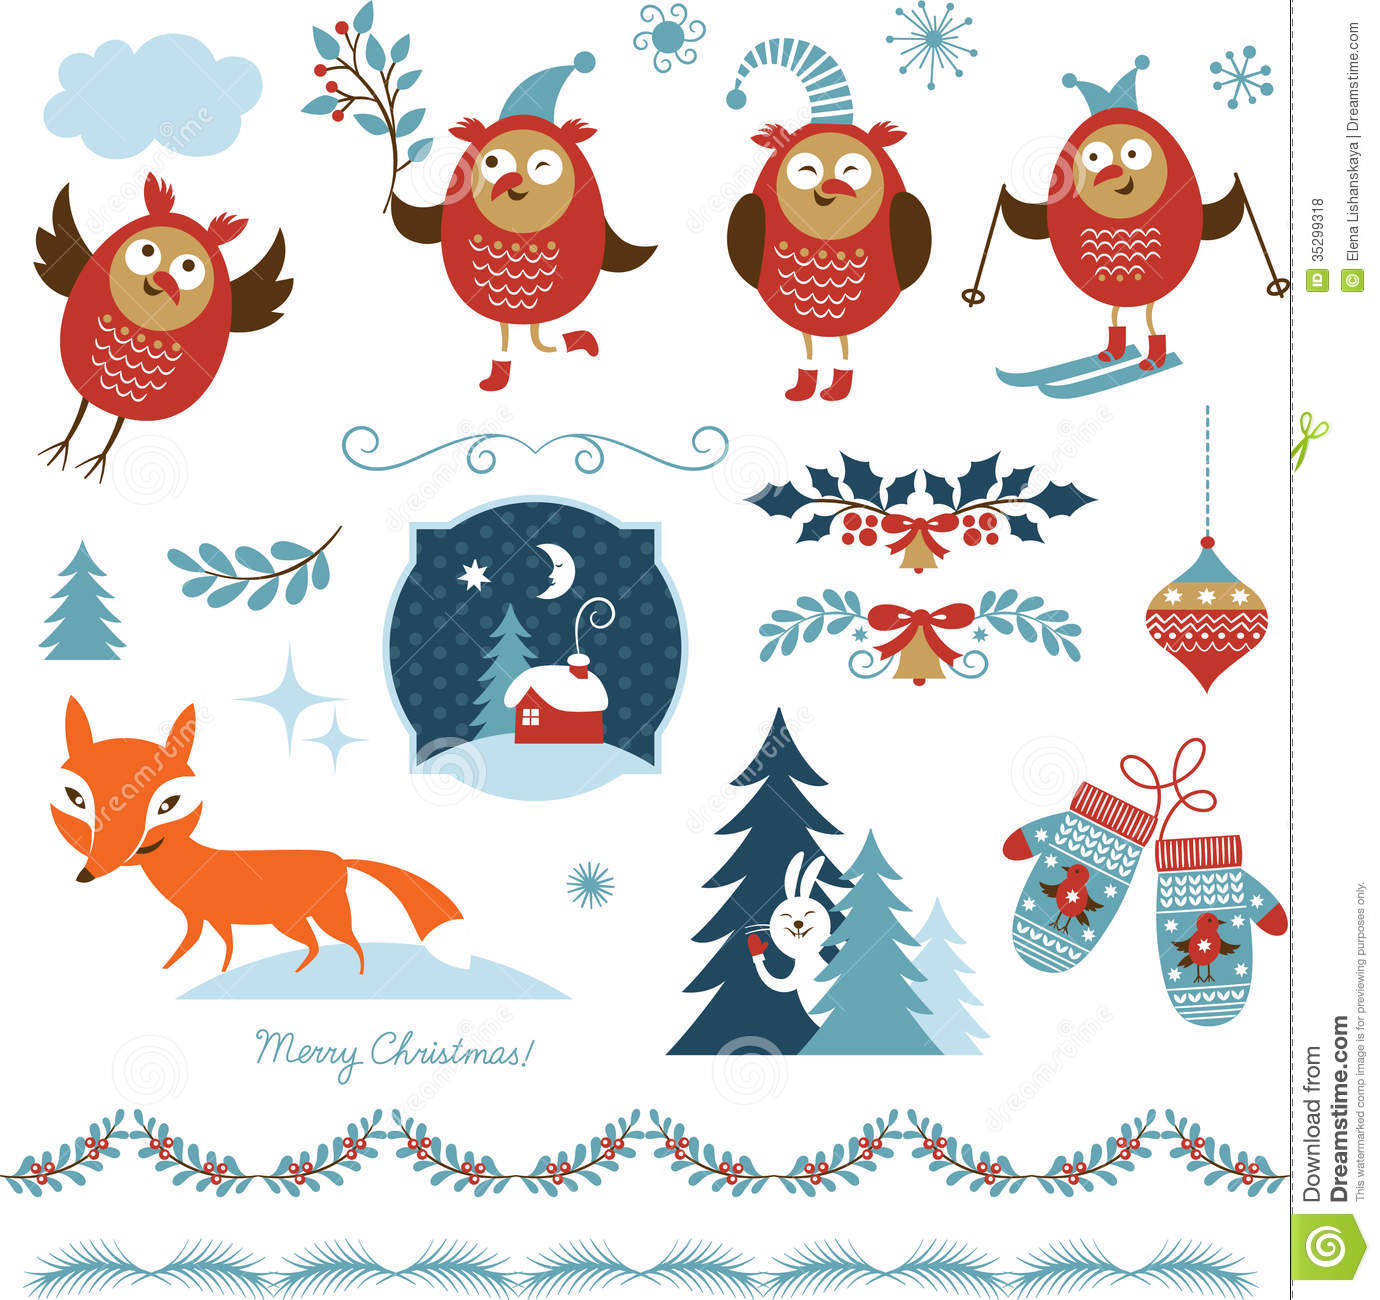 Christmas Graphic.Set Of Christmas Graphic Elements Stock Vector